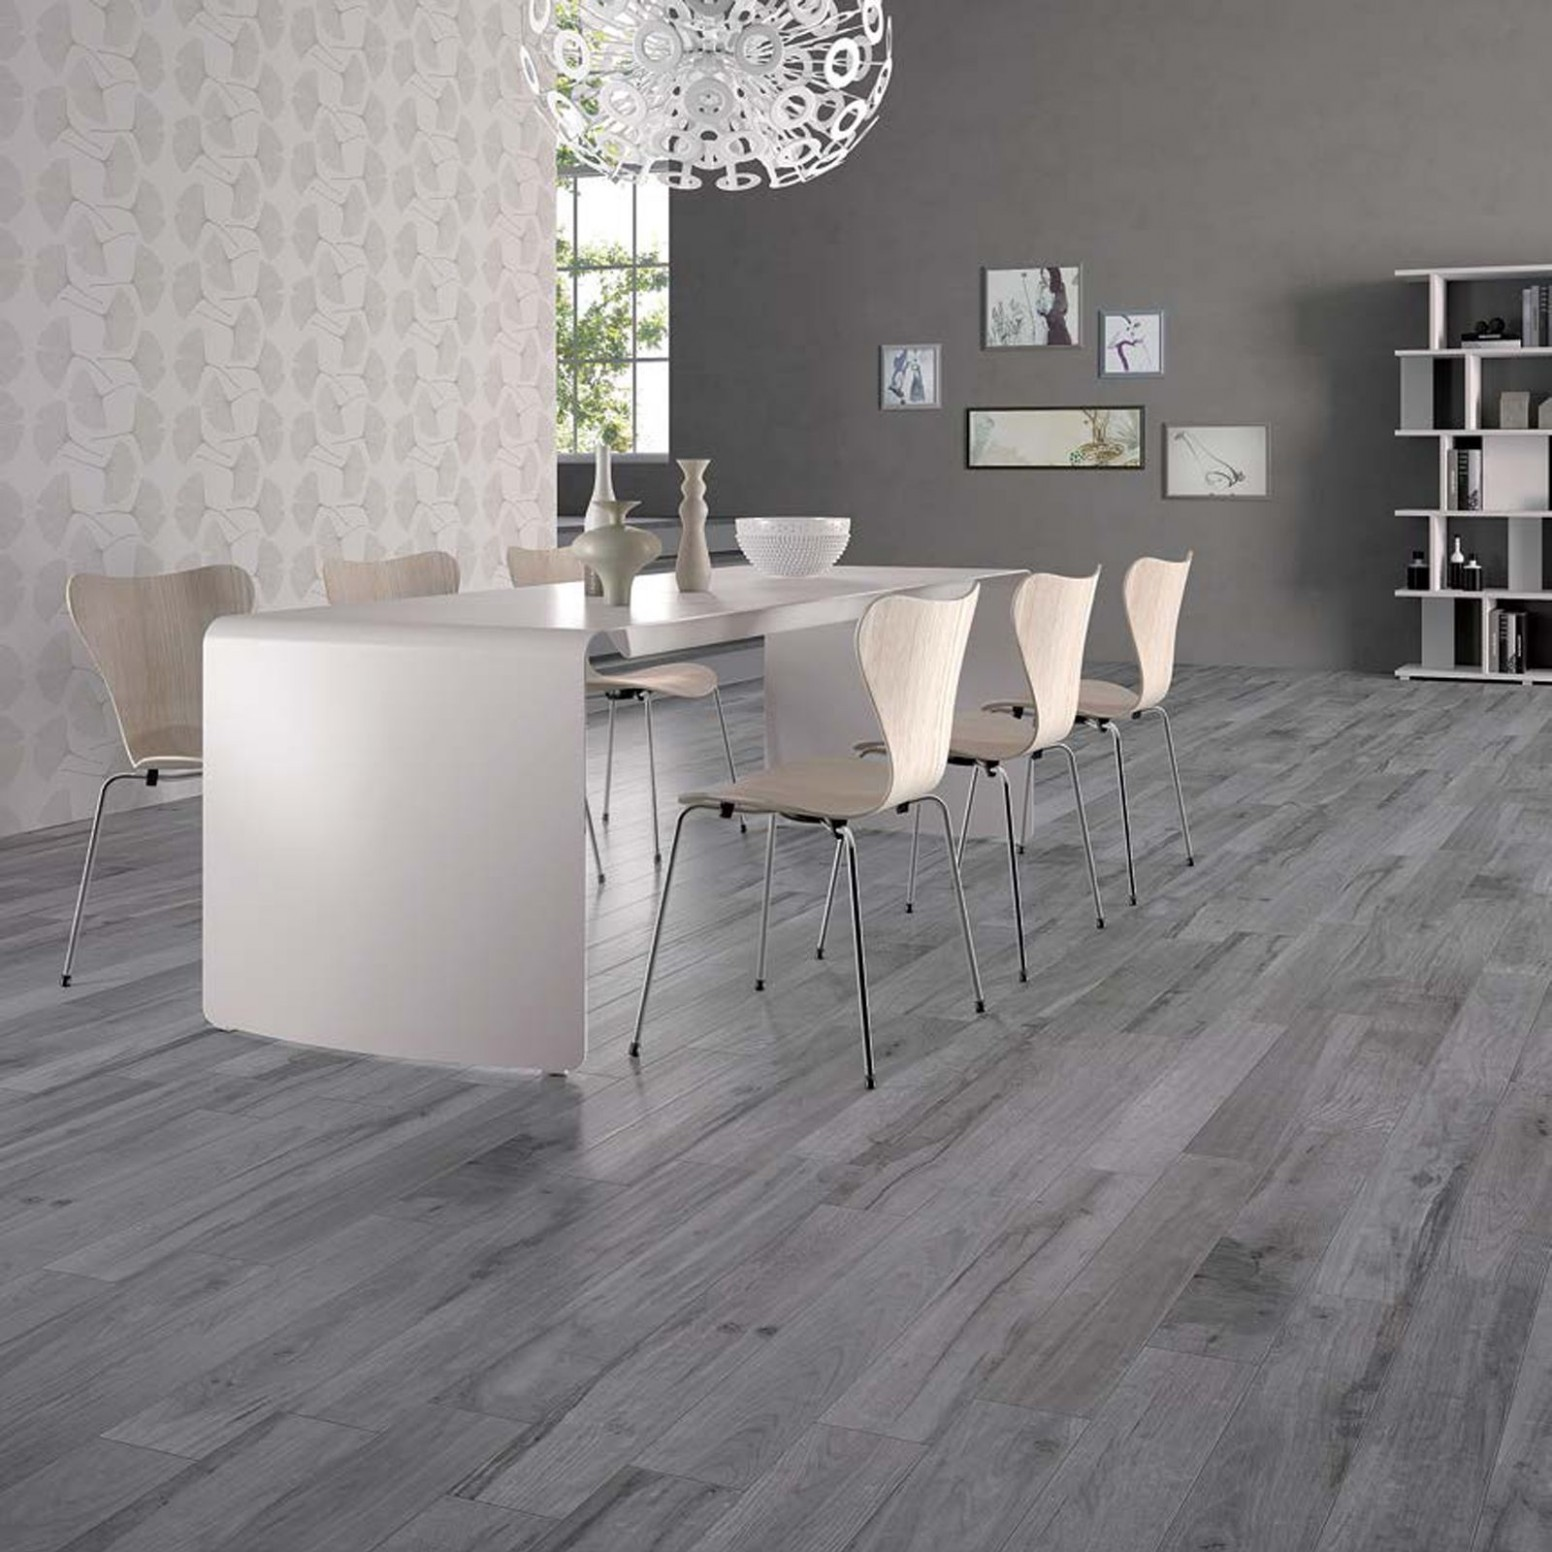 Modern dining area with tiles from Soleras collection by ABK  - Dining Room Ideas Tile Floor